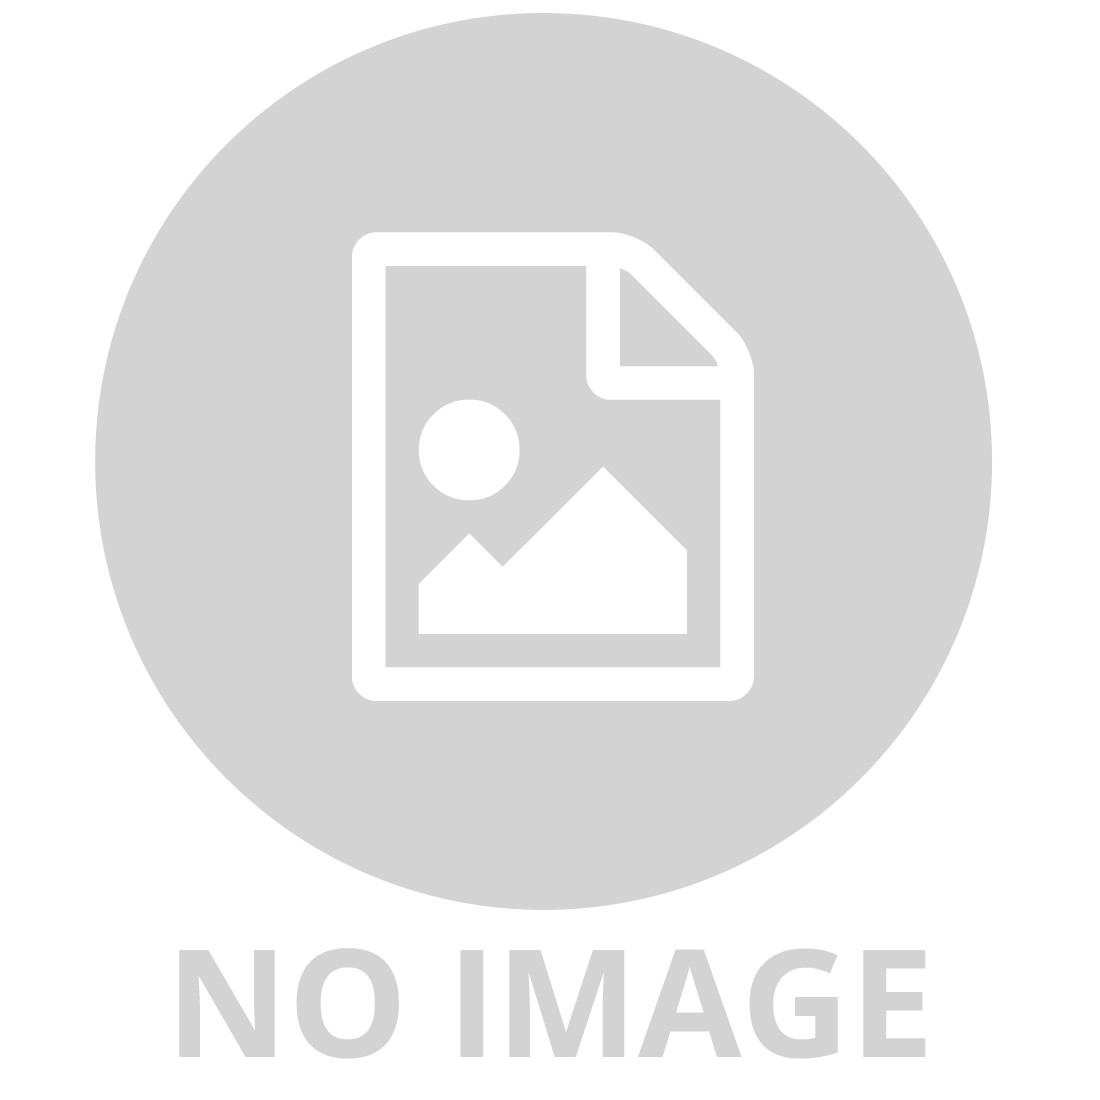 FISHER PRICE LAUGH & LEARN FIRST WORDS SHAPE BLOCKS